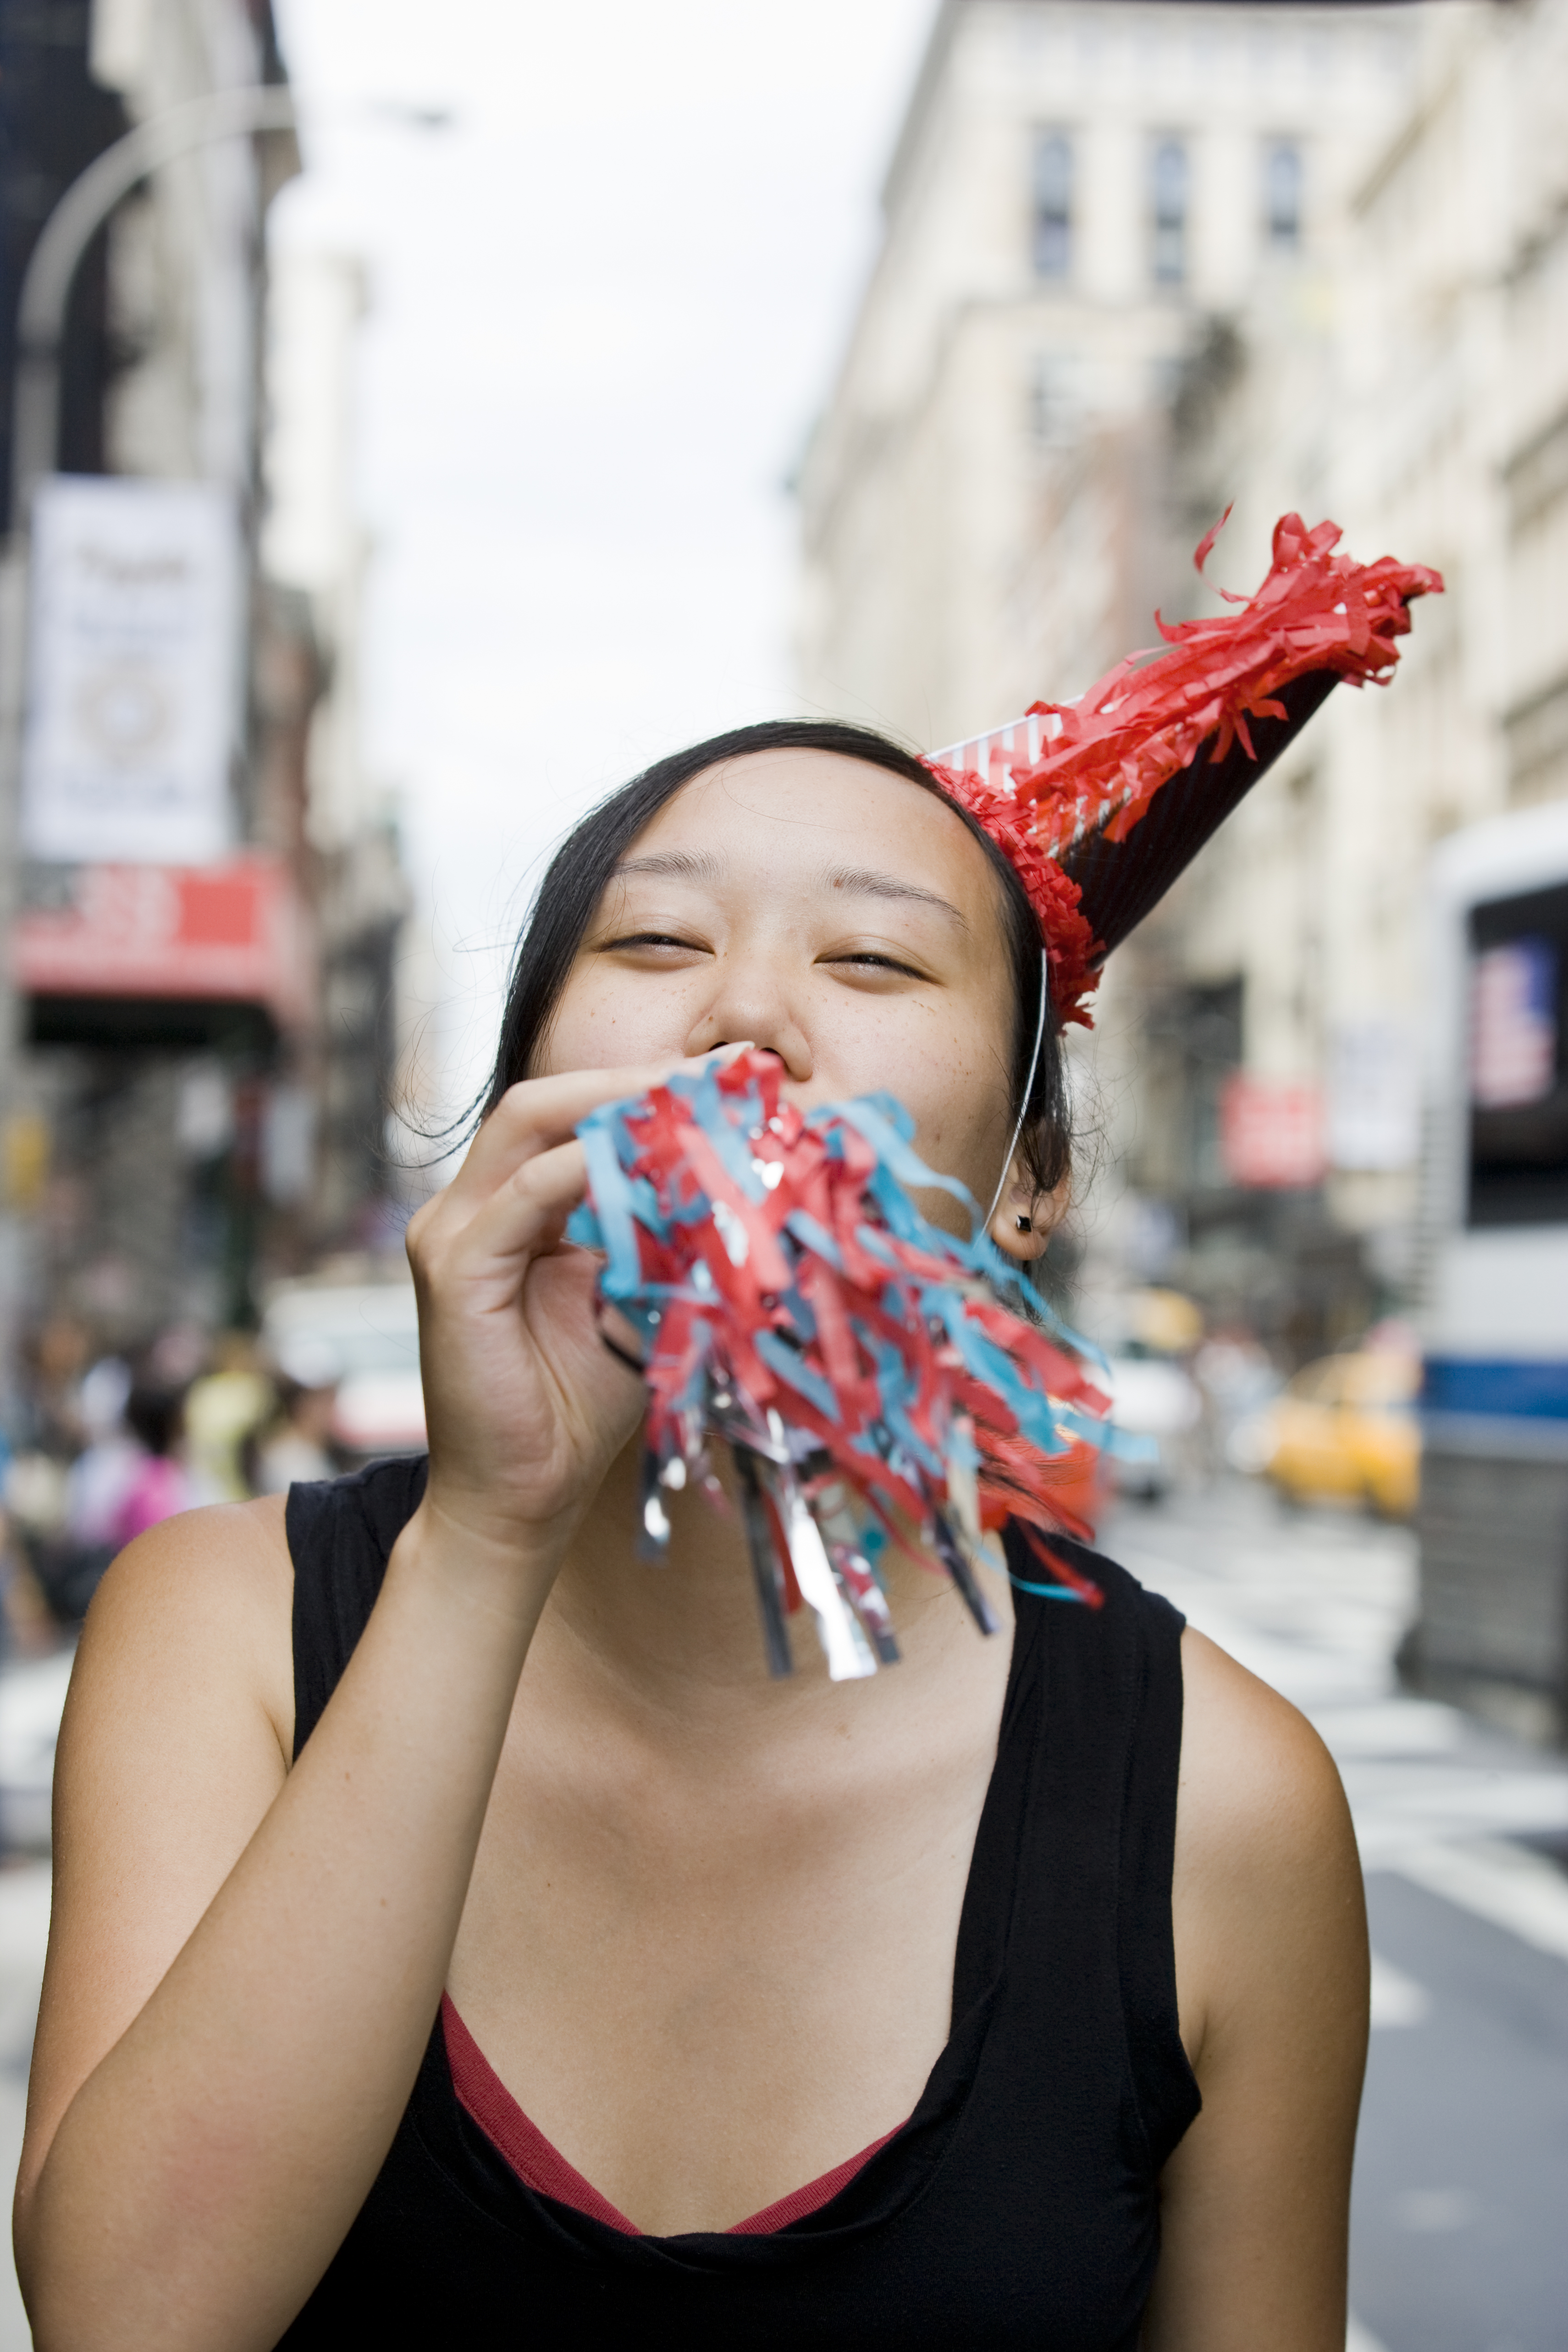 Young Korean woman blowing party horn in downtown city